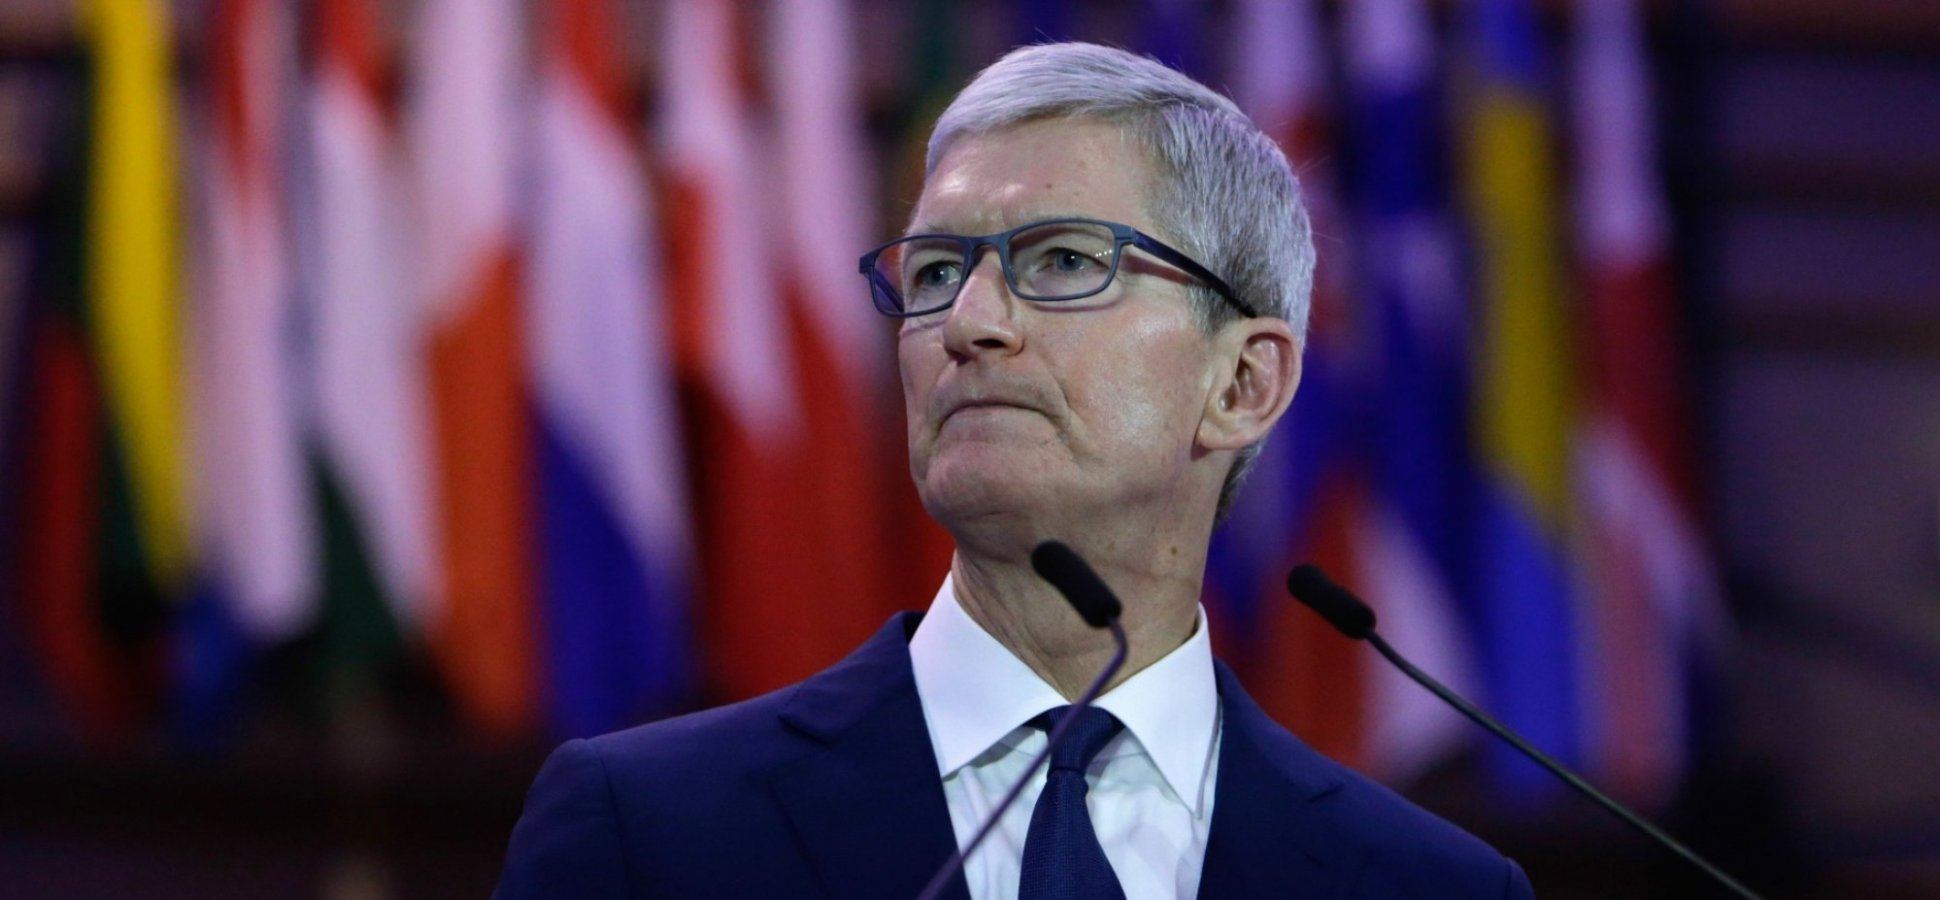 Tim Cook Just Revealed the Single Most Dangerous Thing About Technology Today. Here It Is in 1 Sentence